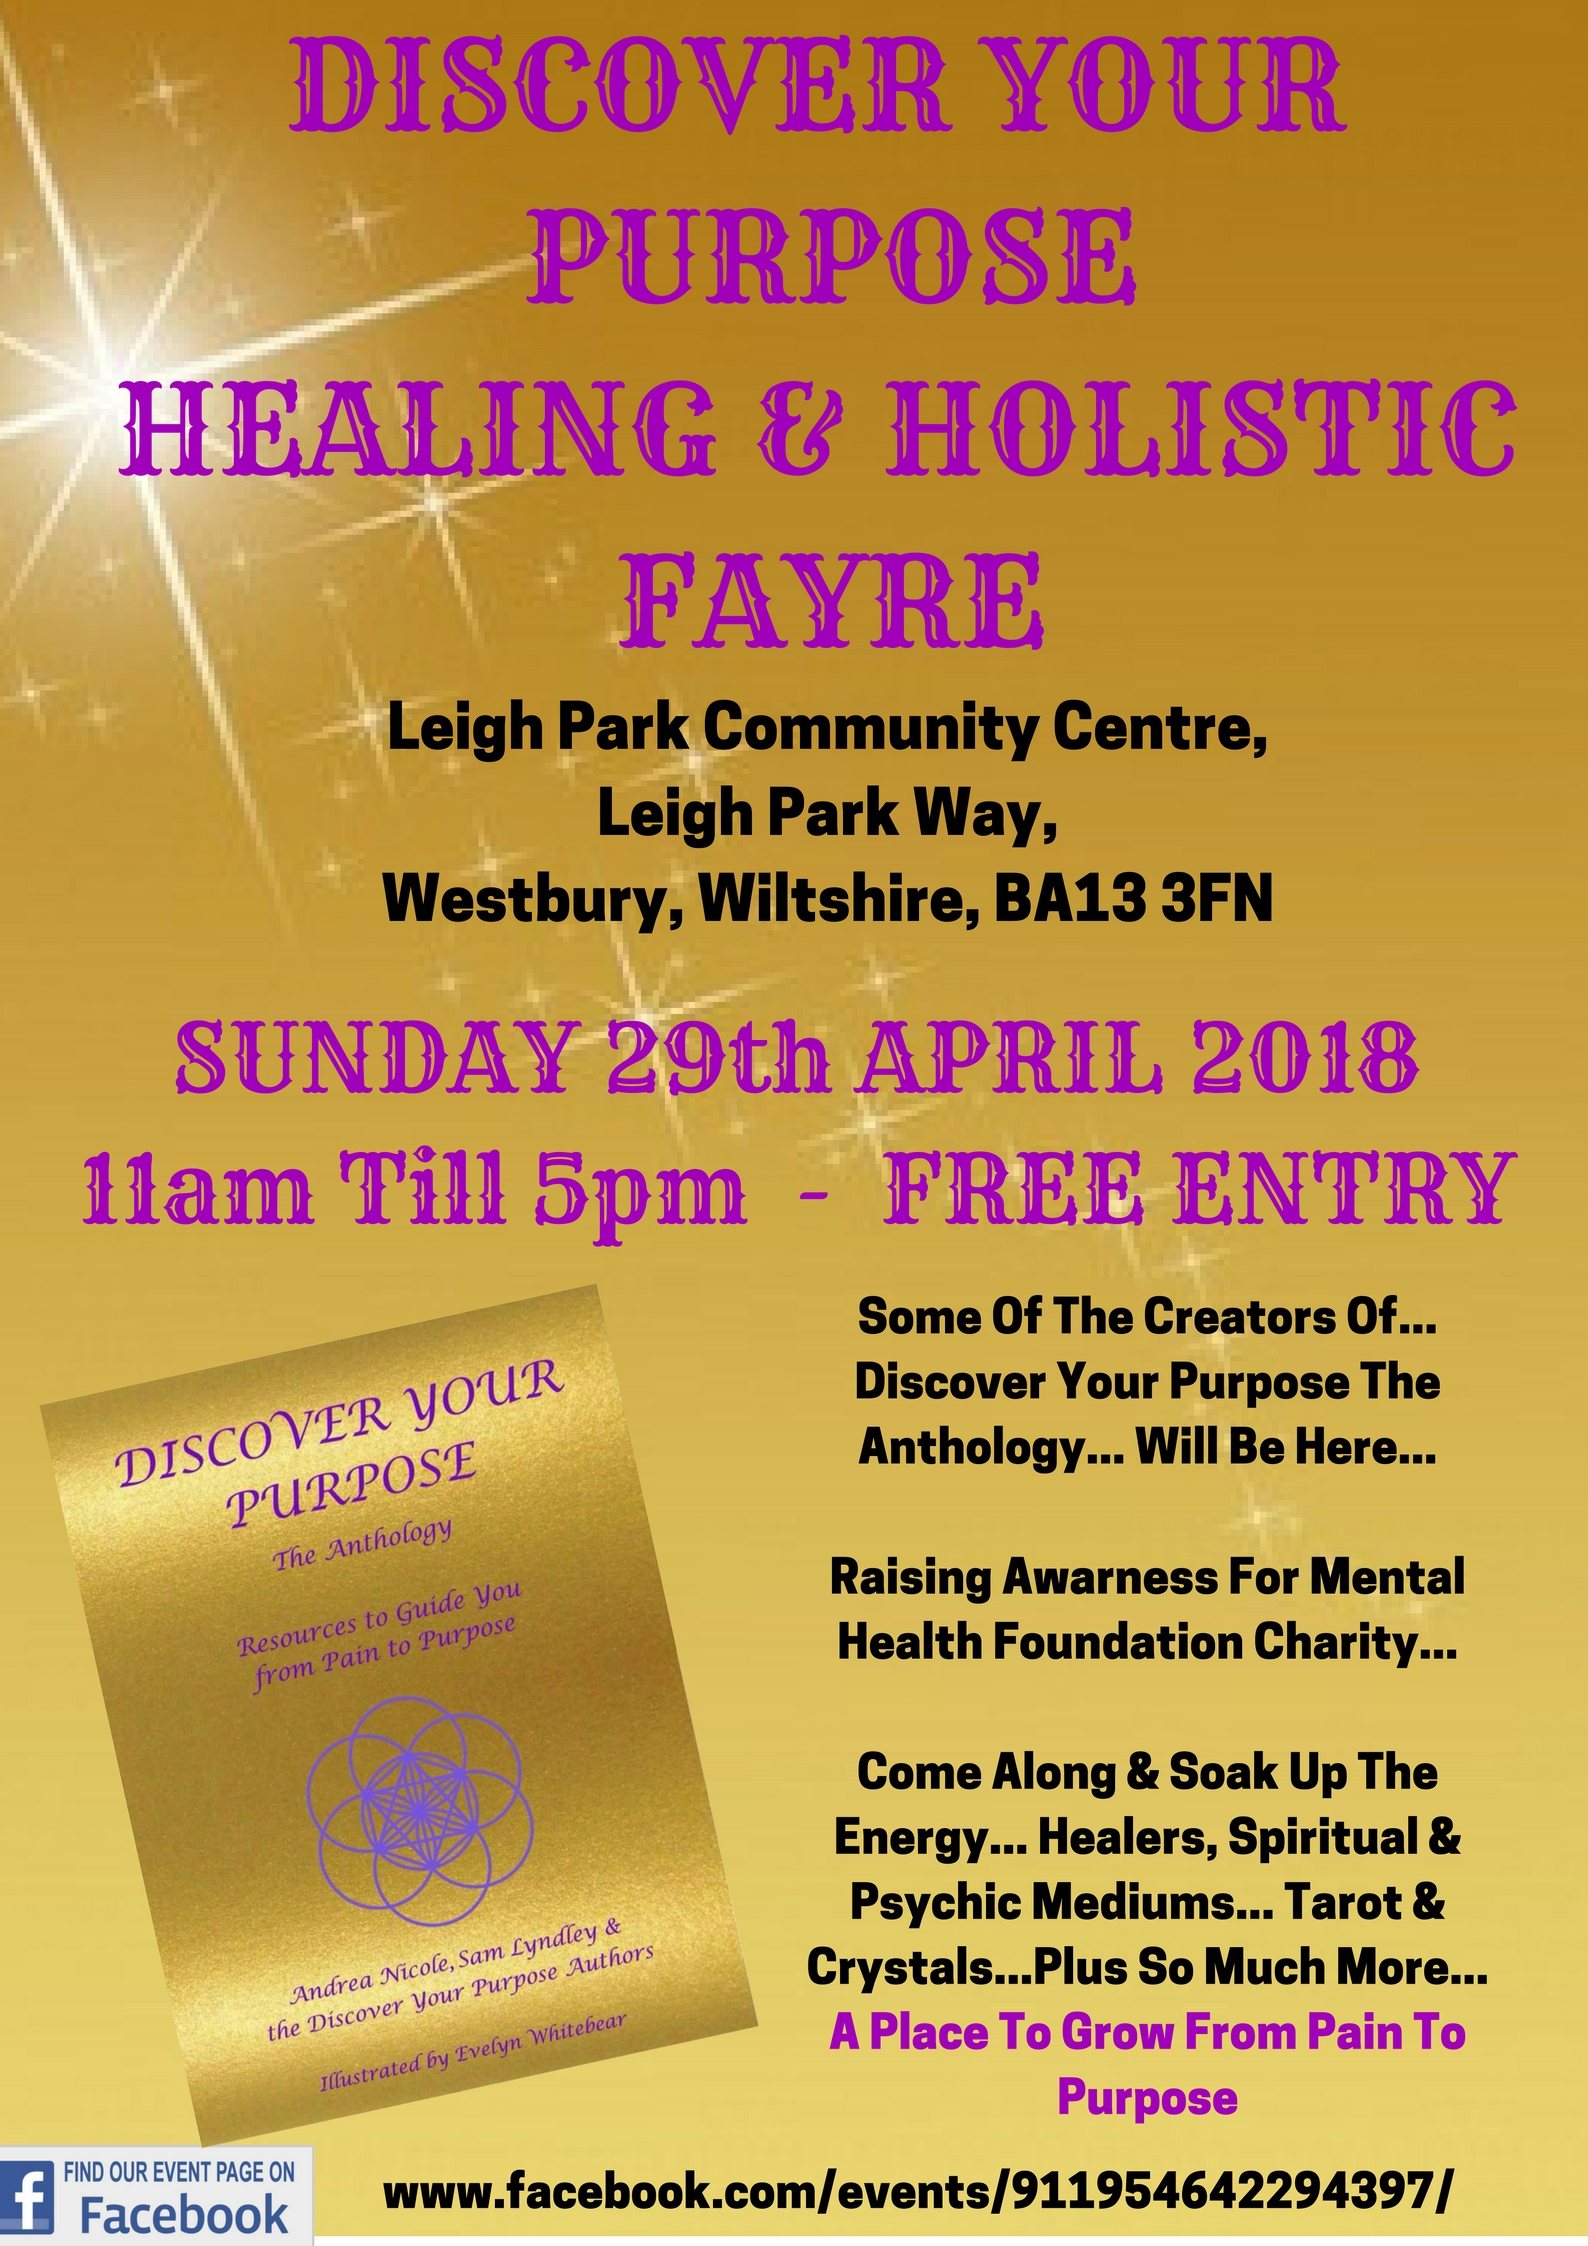 Discover Your Purpose - Pain To Purpose - Healing & Holistic Fayre